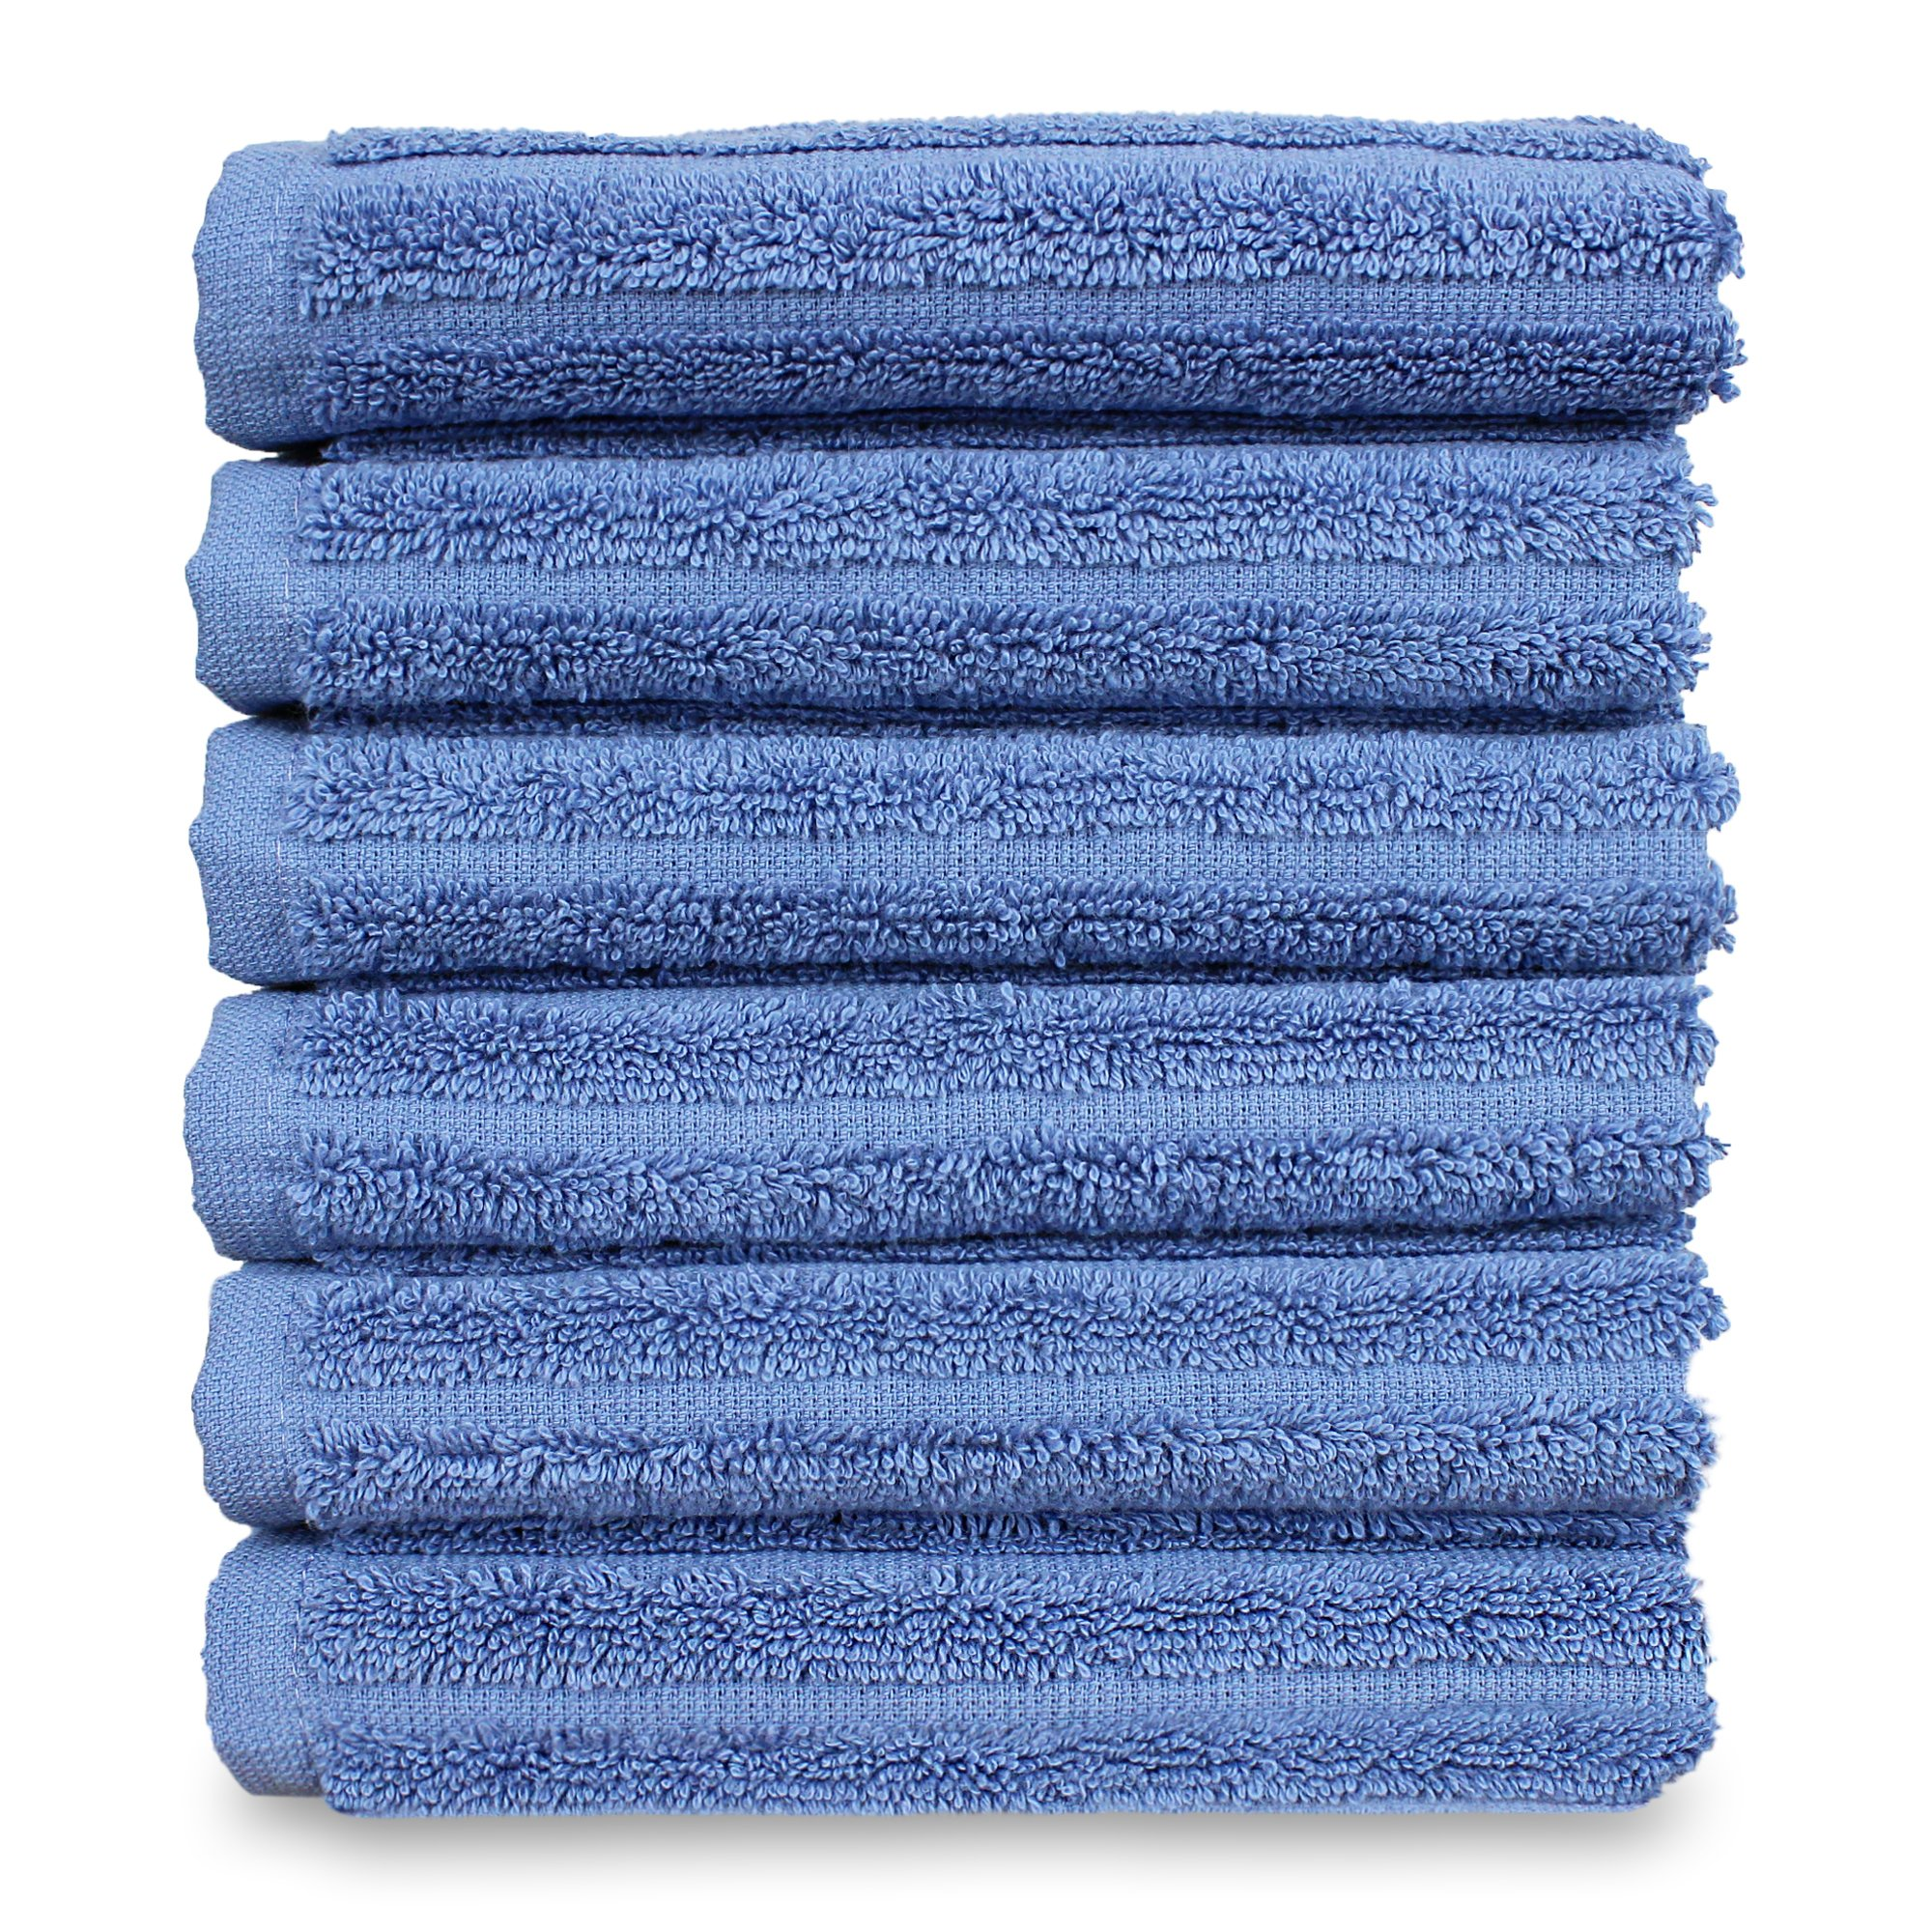 Luxury Hotel & Spa Towel Turkish Cotton Washcloths - Wedgewood - Striped - Set of 6